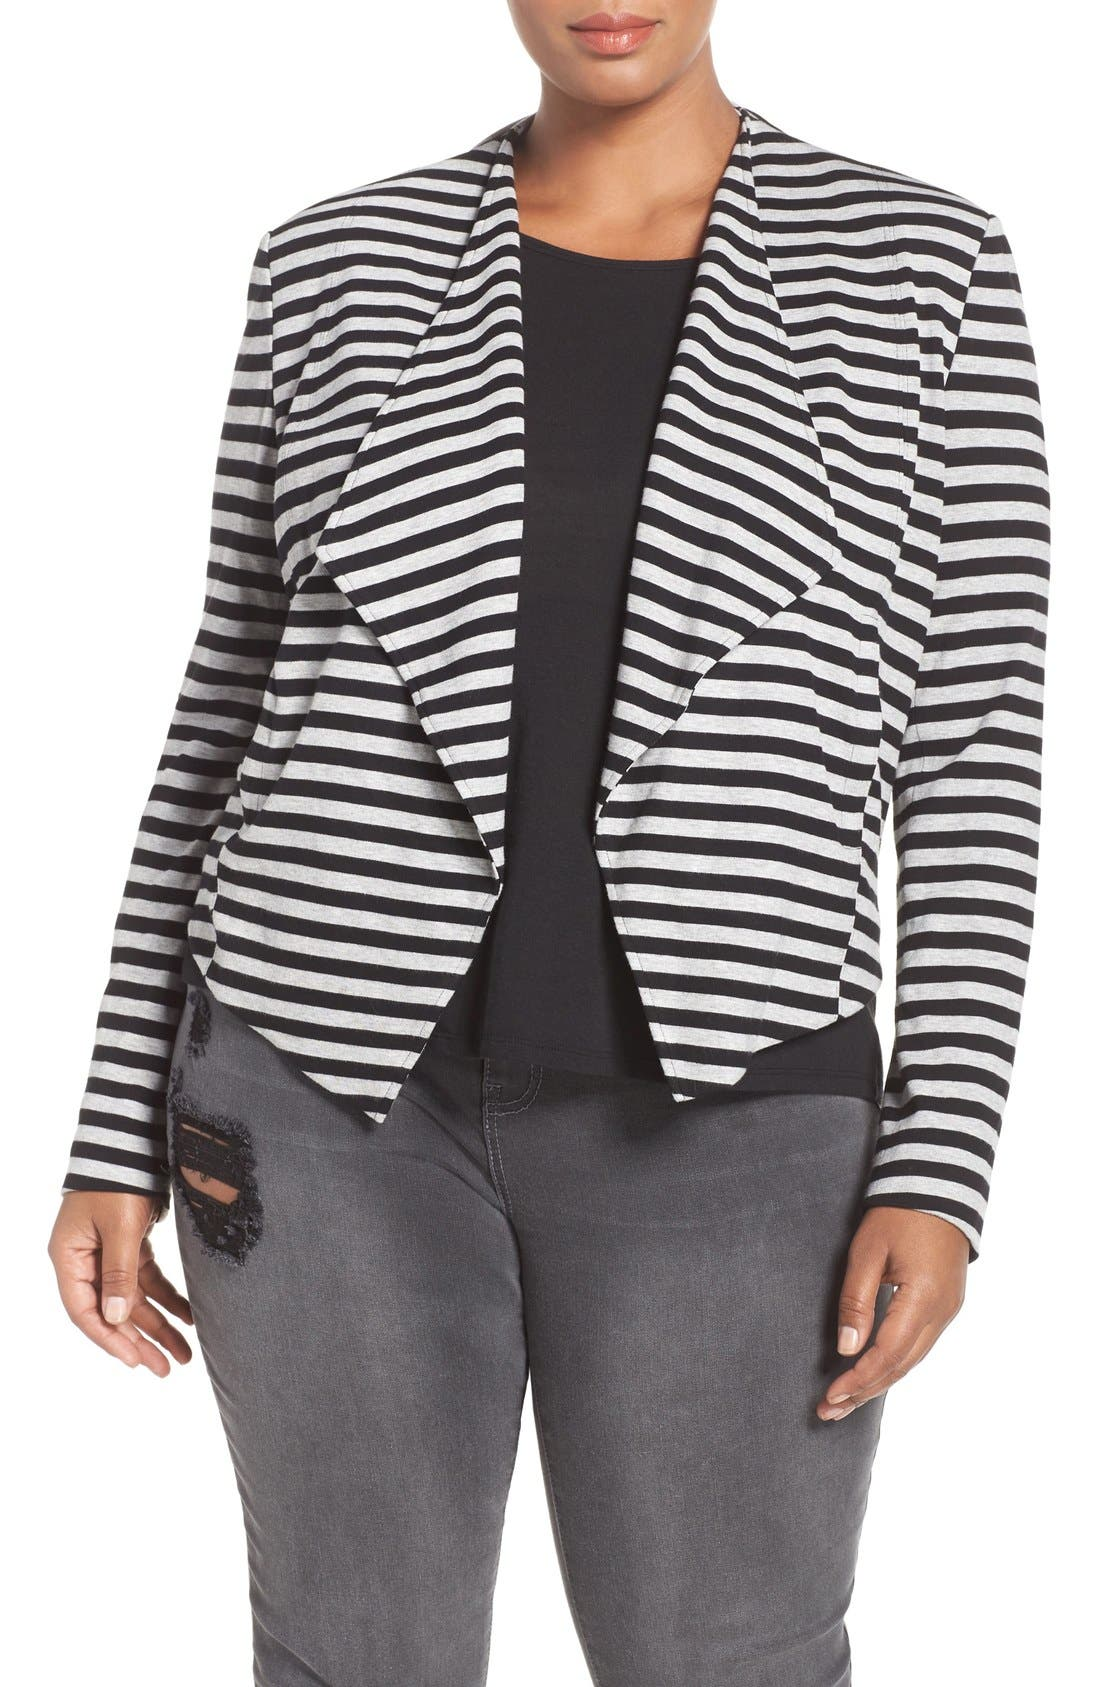 Tart 'Veronicka' Stripe Knit Open Front Jacket (Plus Size)